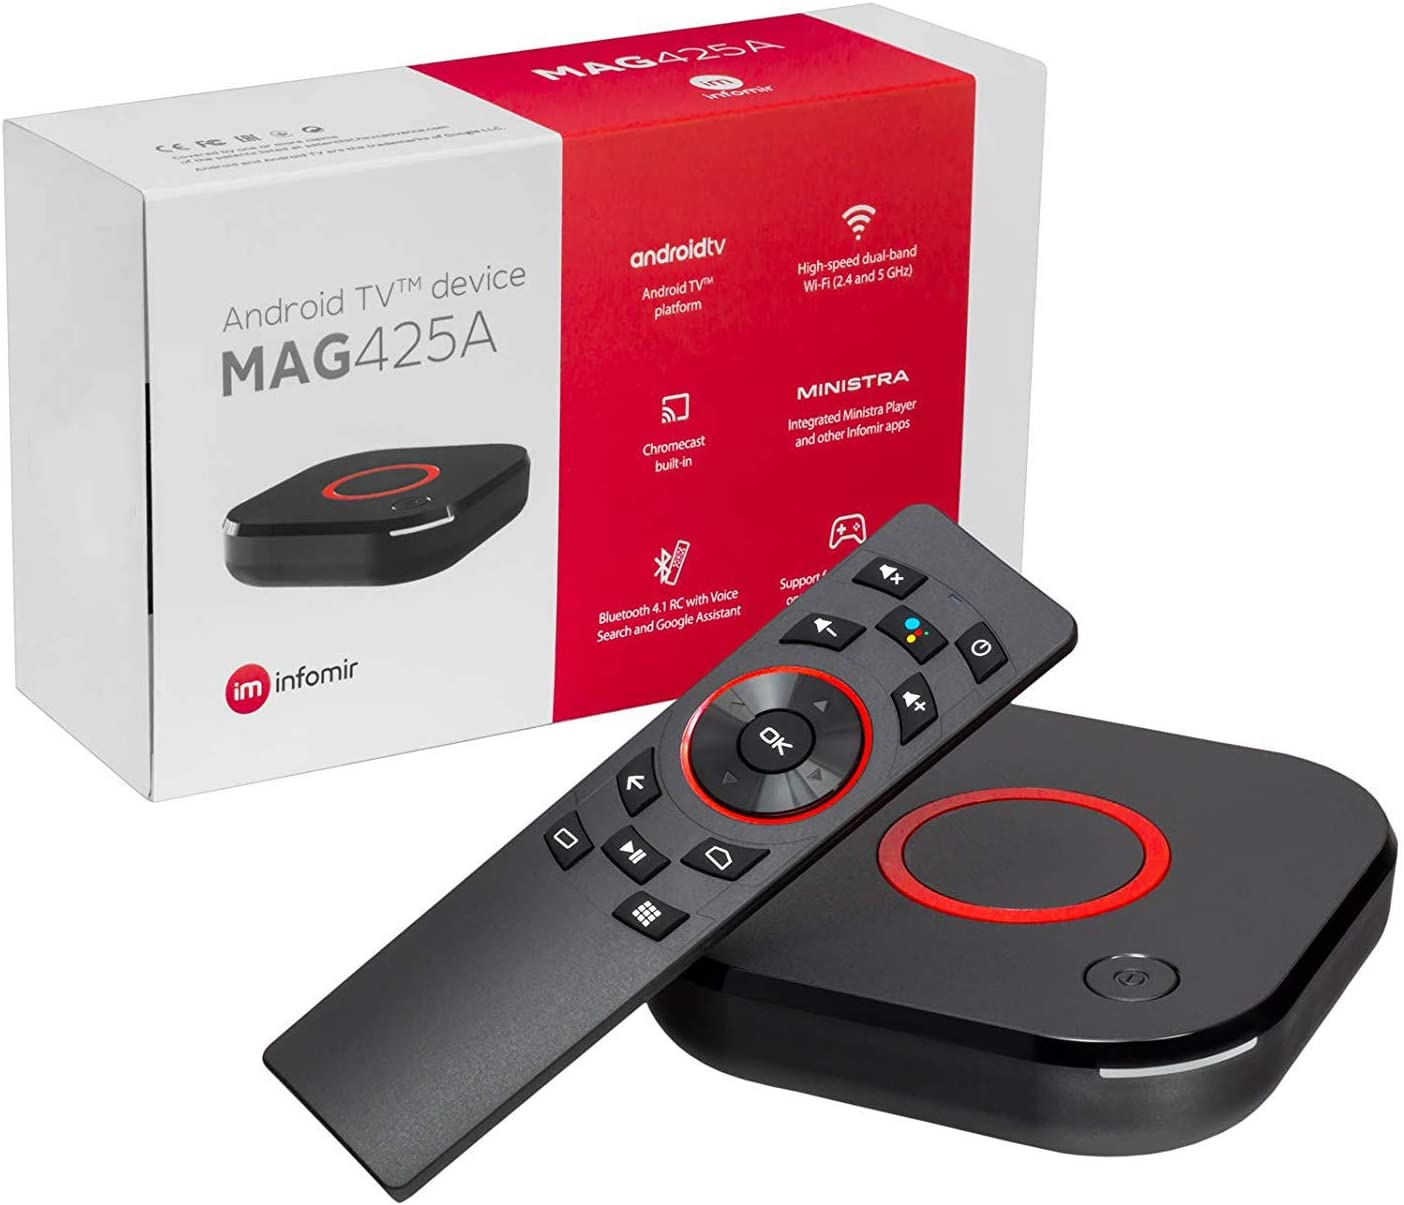 MAG425A Infomir 4K IPTV Set Top Box Android TV 8.0 Multimedia IPTV Player: Amazon.es: Electrónica